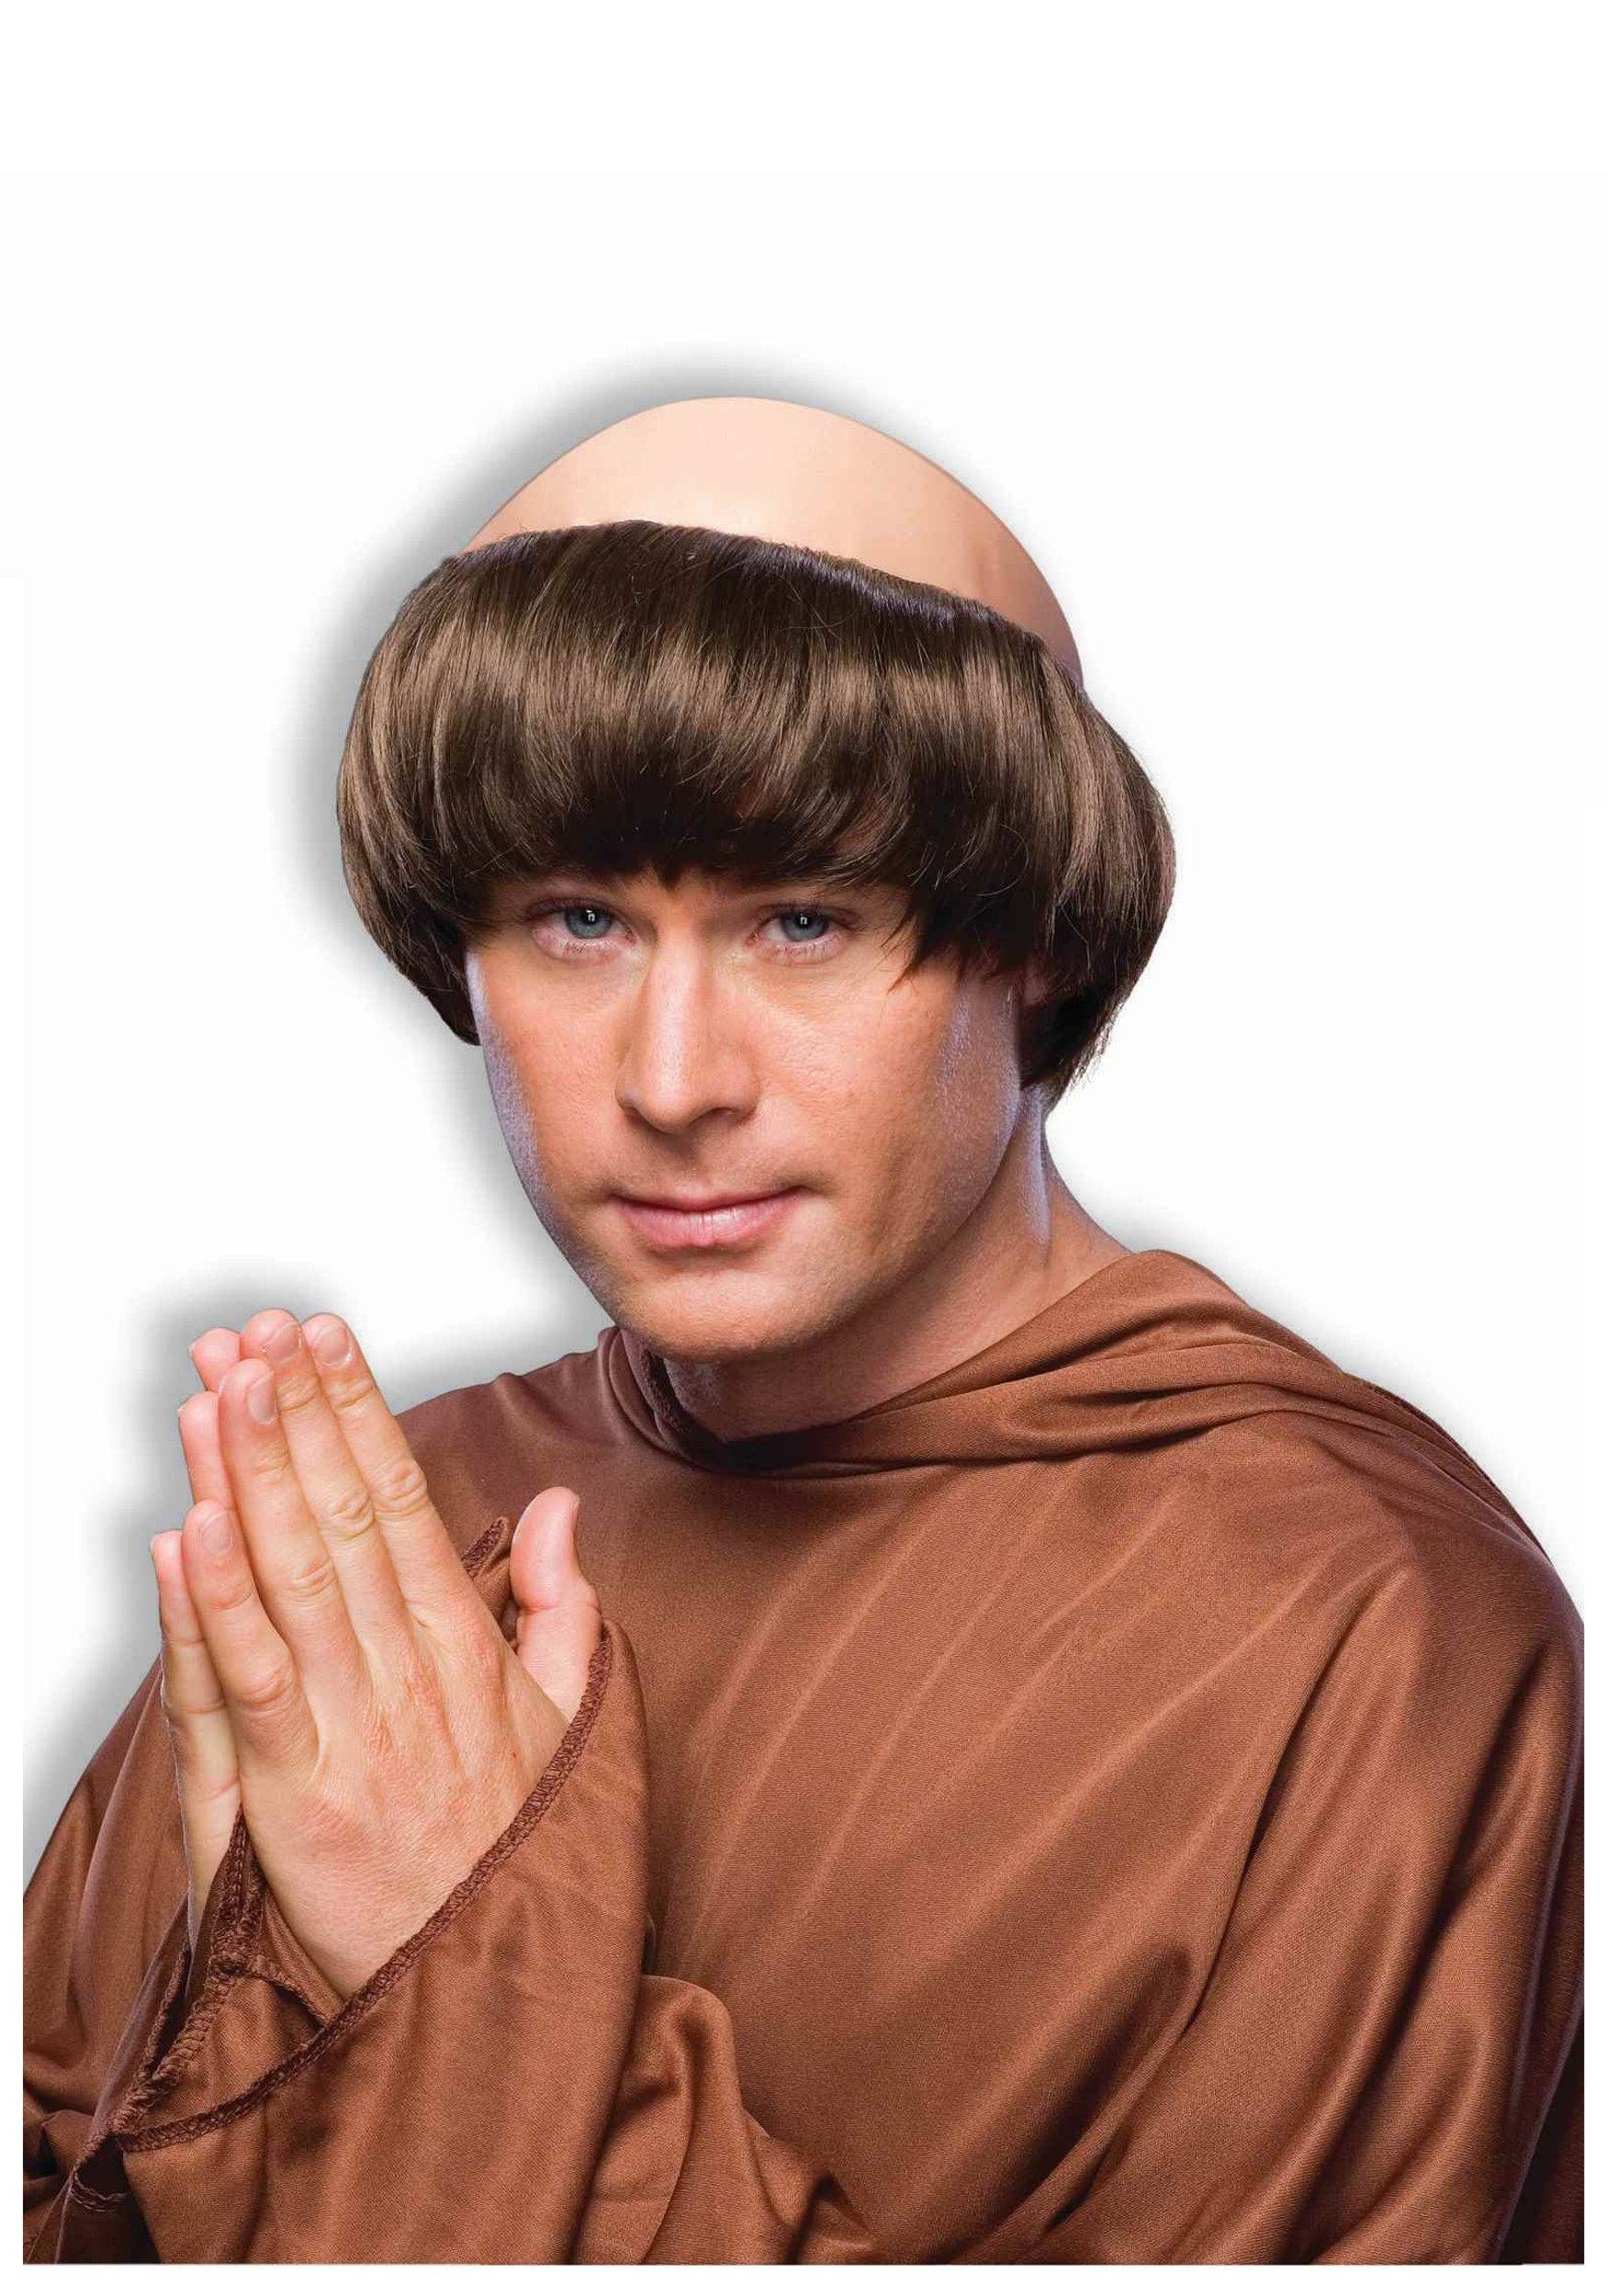 Pious Monk Wig  sc 1 st  Halloween Costume & Pious Monk Wig - Menu0027s Monk Religious Costumes and Accessories